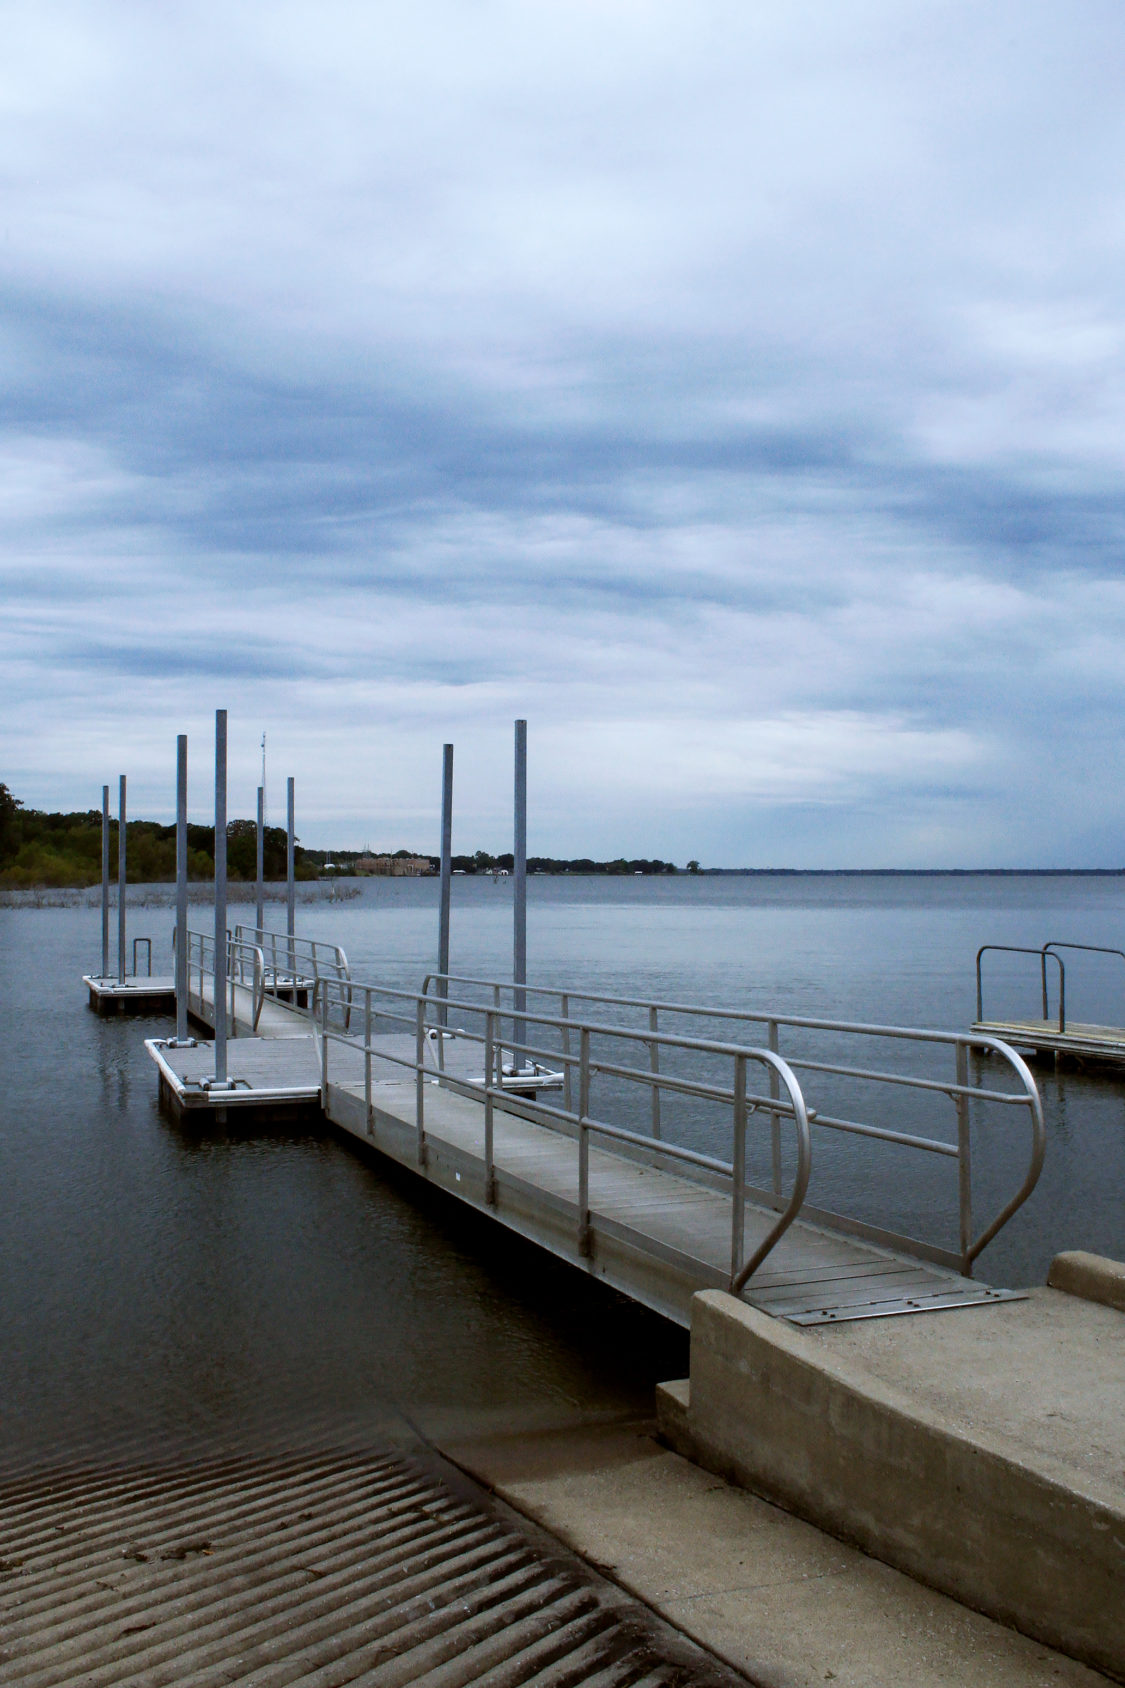 A Rainy Weekend at Lake Tawakoni